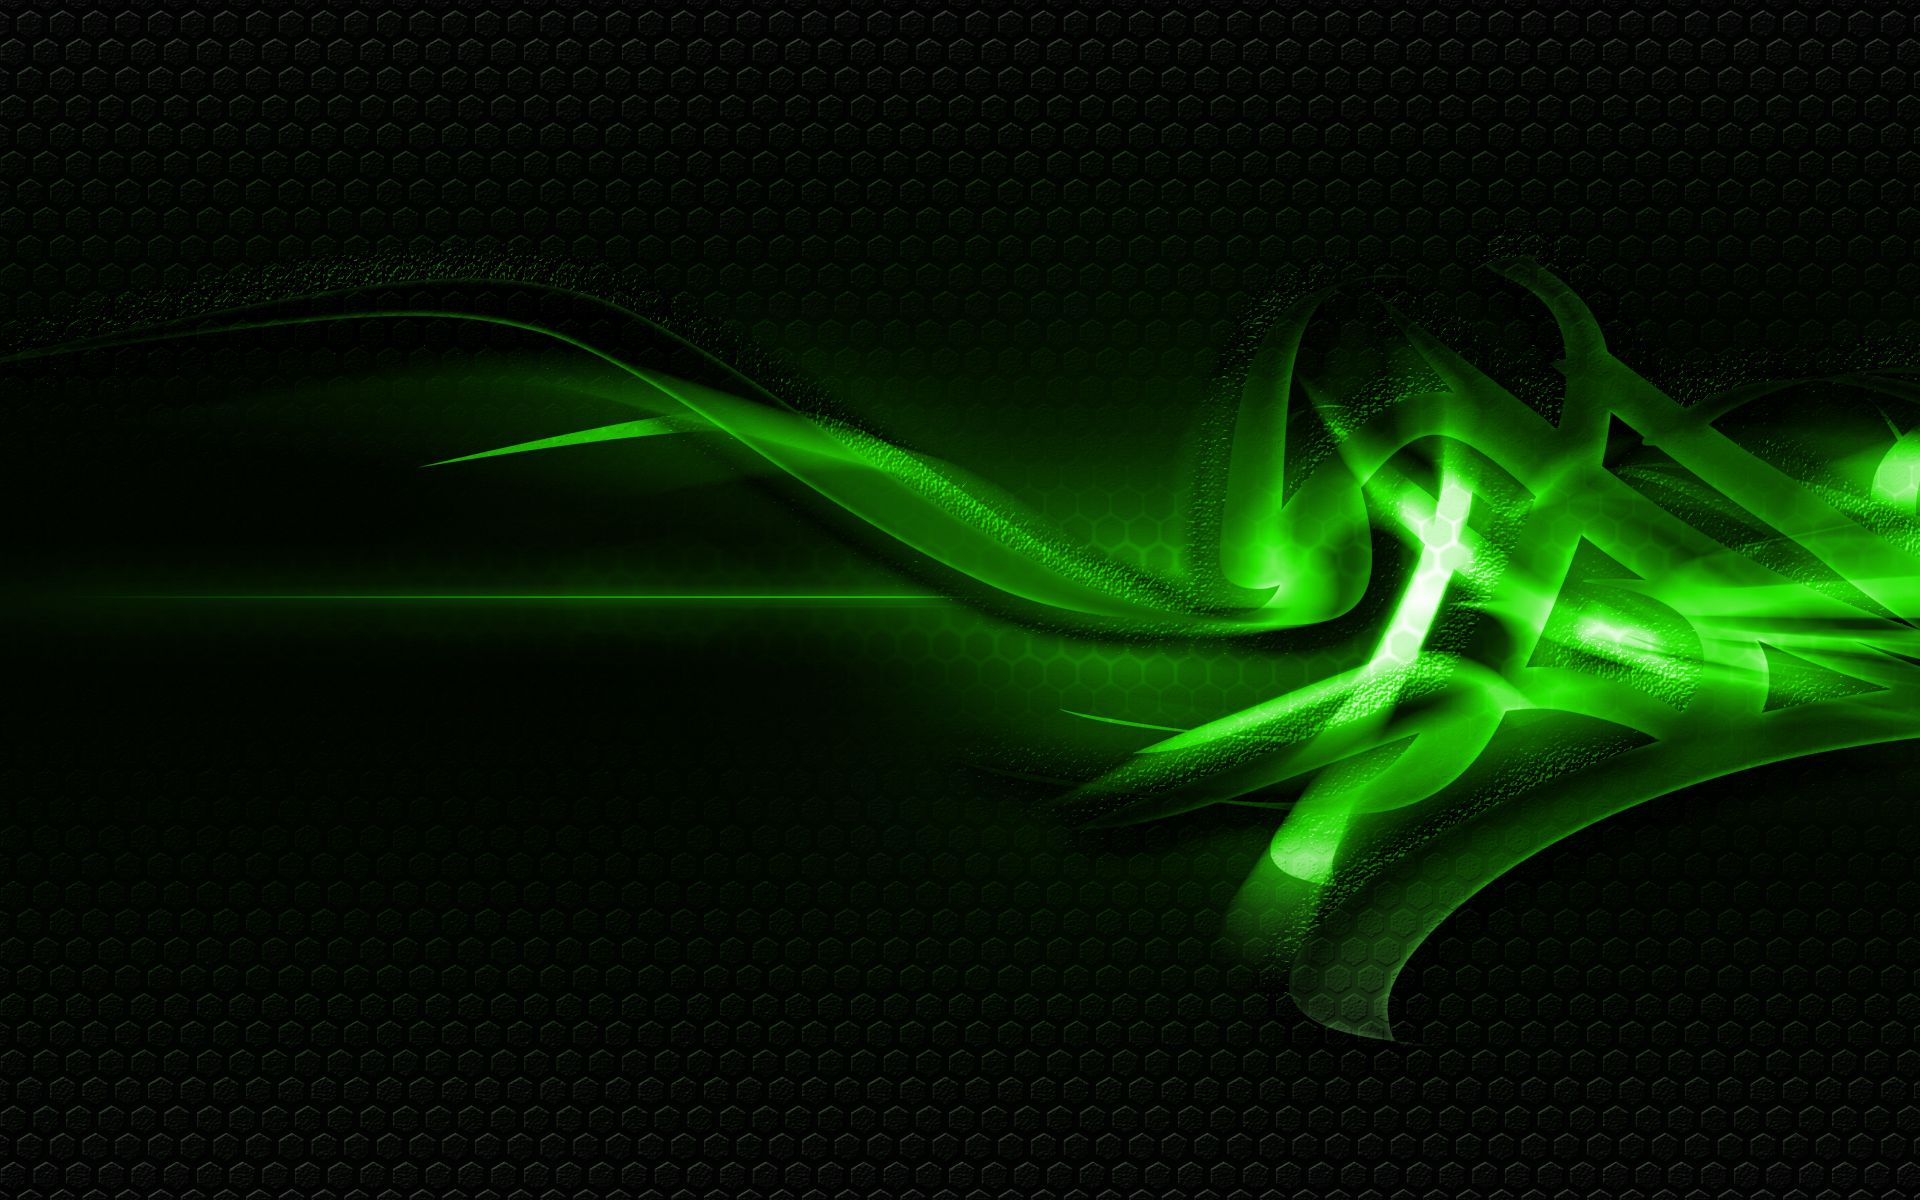 Green Wallpaper Cool Abstract Green Colors 655752 Dark Green Wallpaper Dark Wallpaper Green Wallpaper